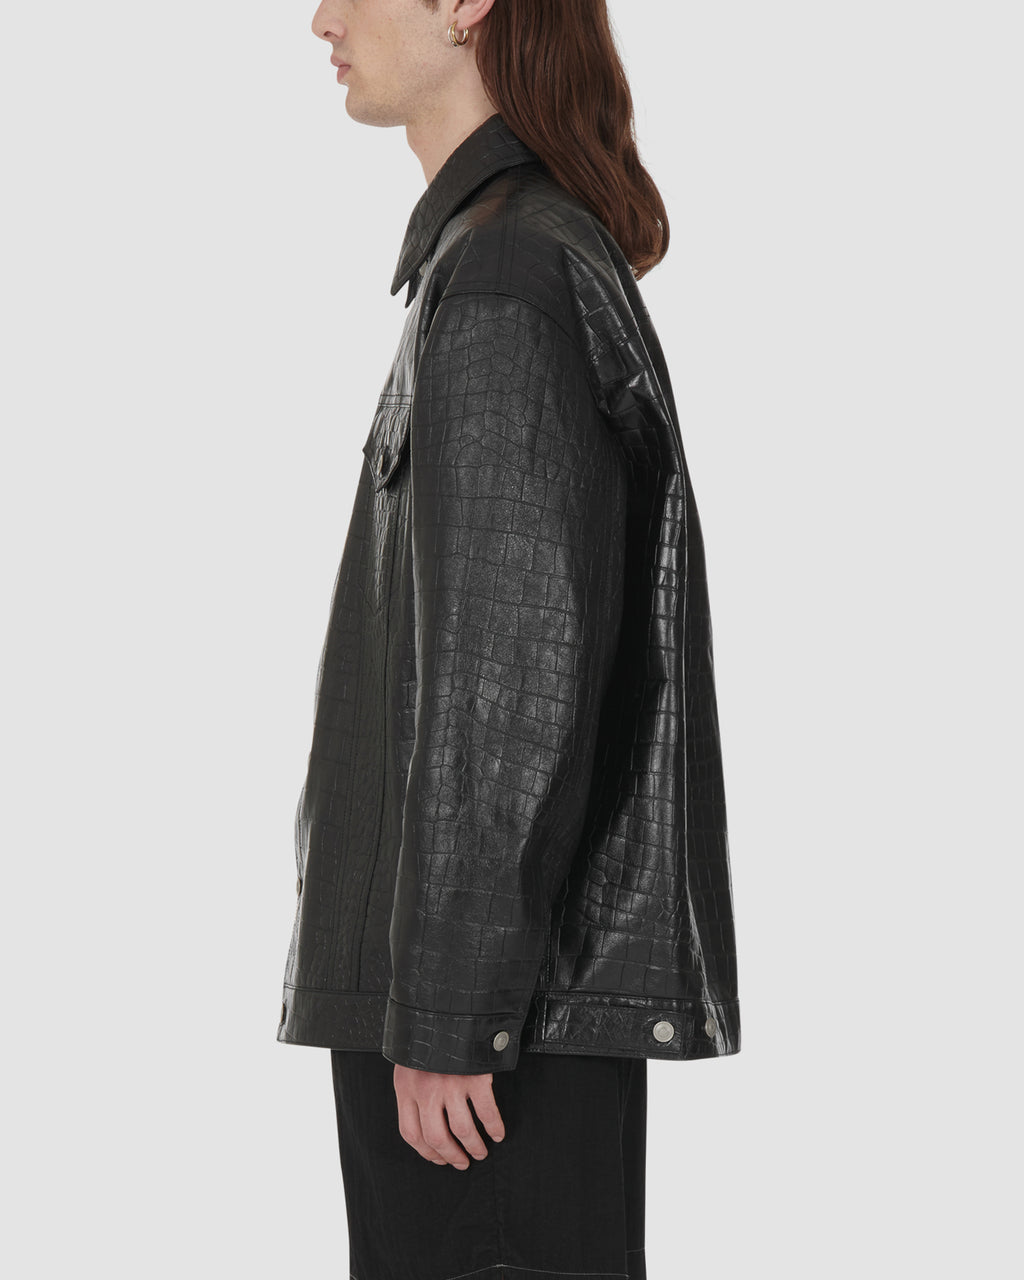 1017 ALYX 9SM | LEATHER JACKET | Outerwear | Black, Google Shopping, Man, Outerwear, S20, S20 Drop II, UNISEX, Woman